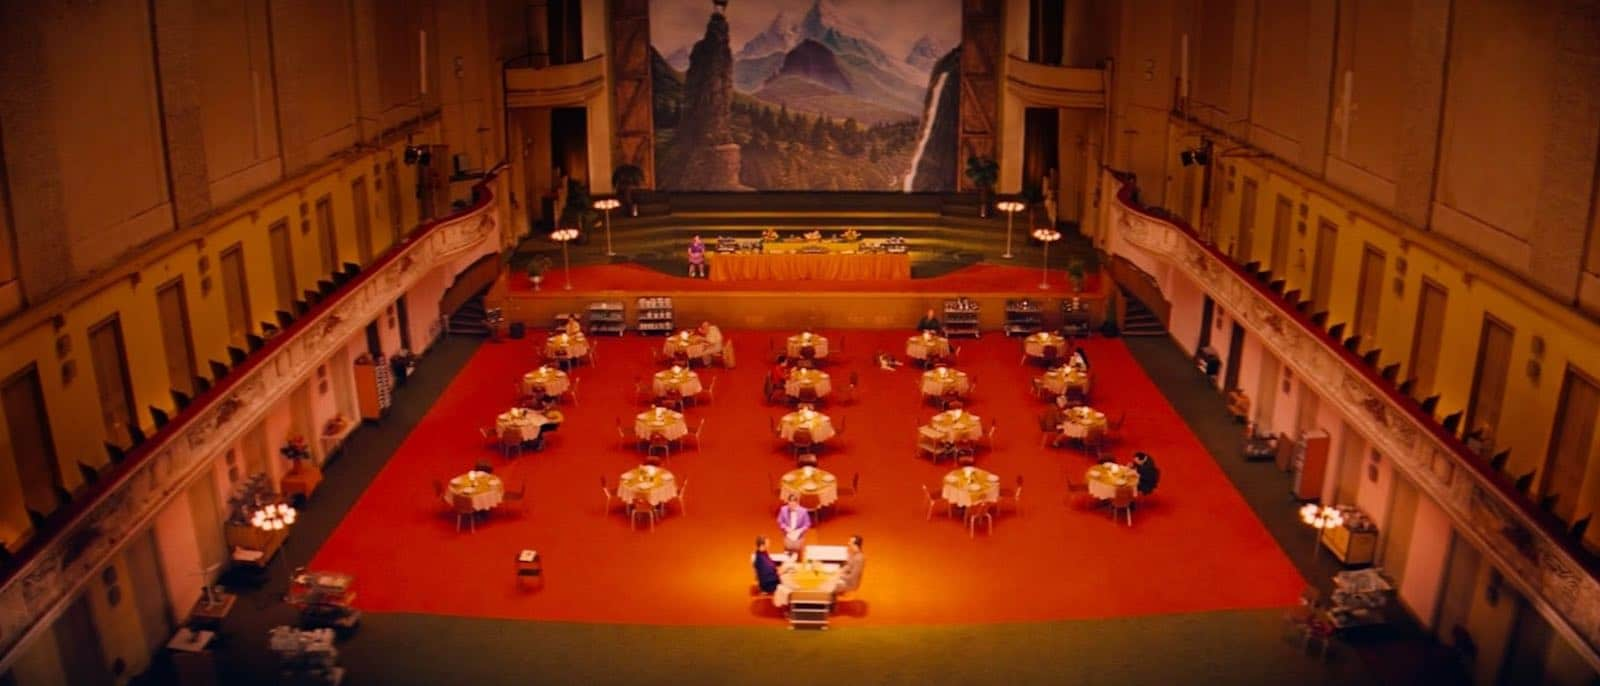 Establishing Shot - Grand Budapest Hotel - Dinner Scene